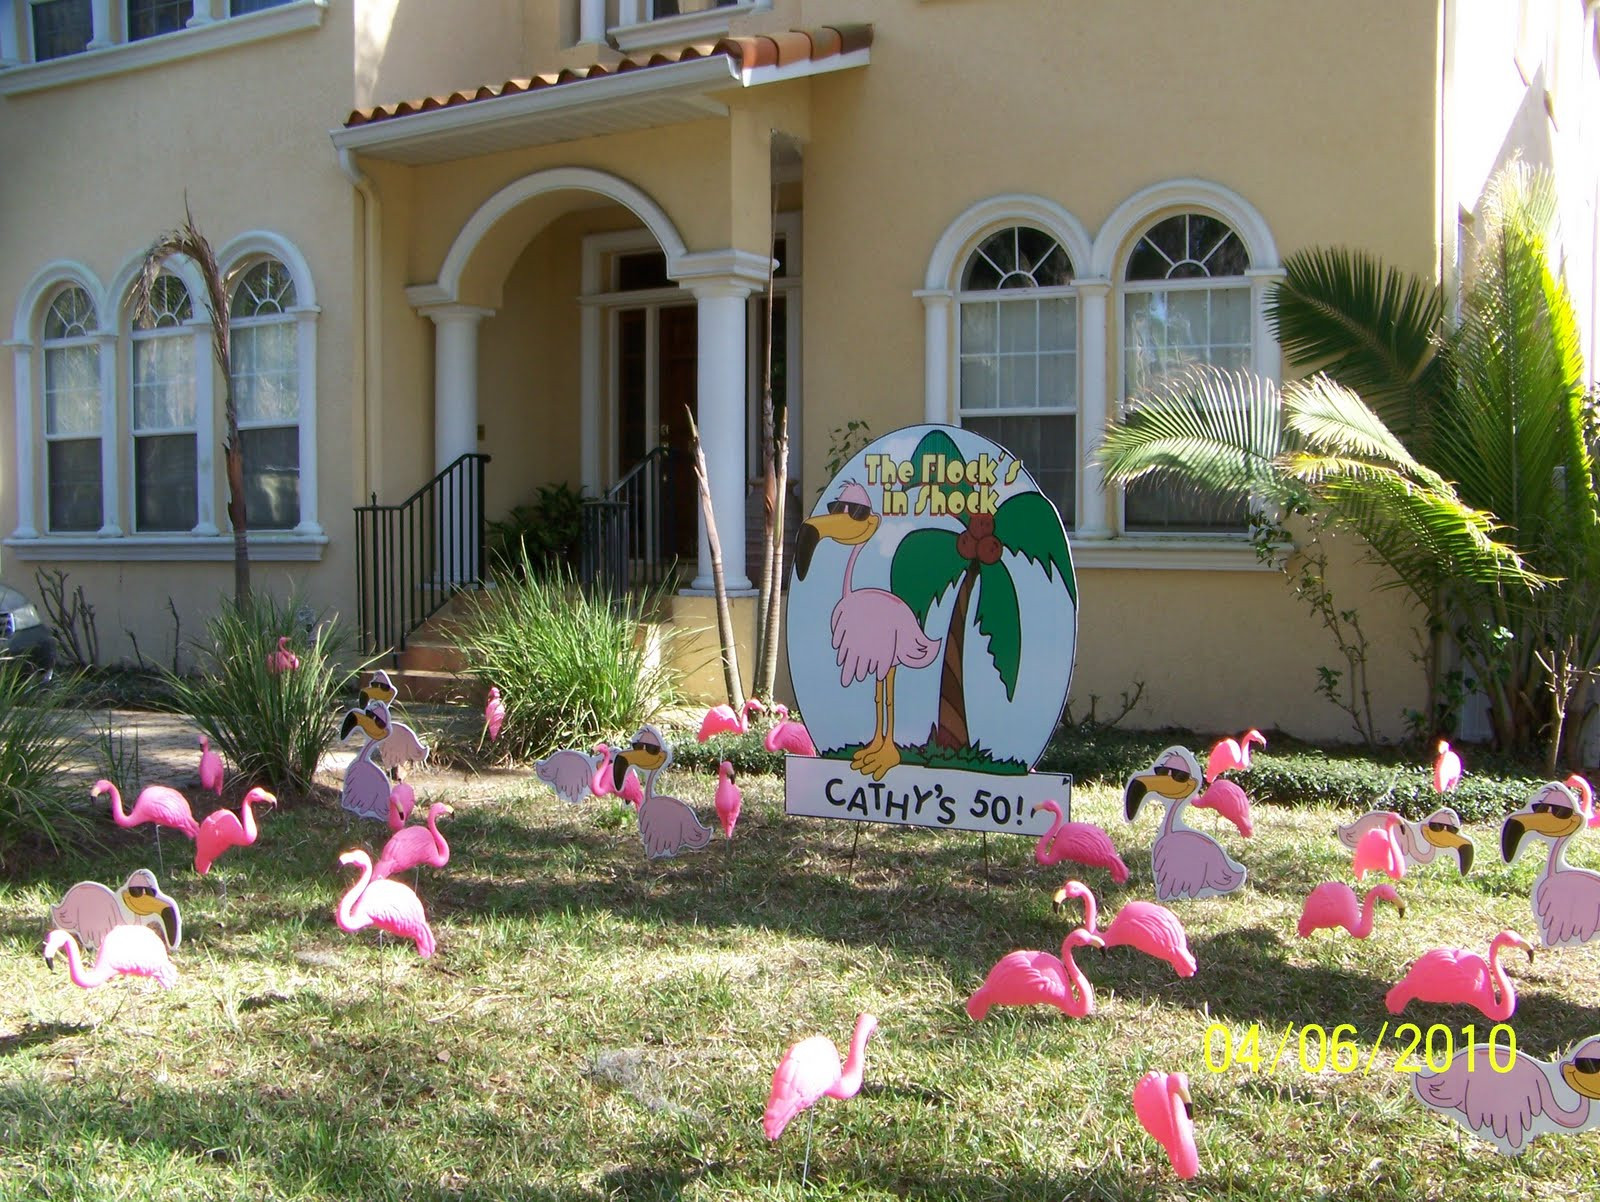 Best ideas about Birthday Yard Decorations . Save or Pin FLOCK N SURPRISE 727 687 8111 LARGO Florida Now.